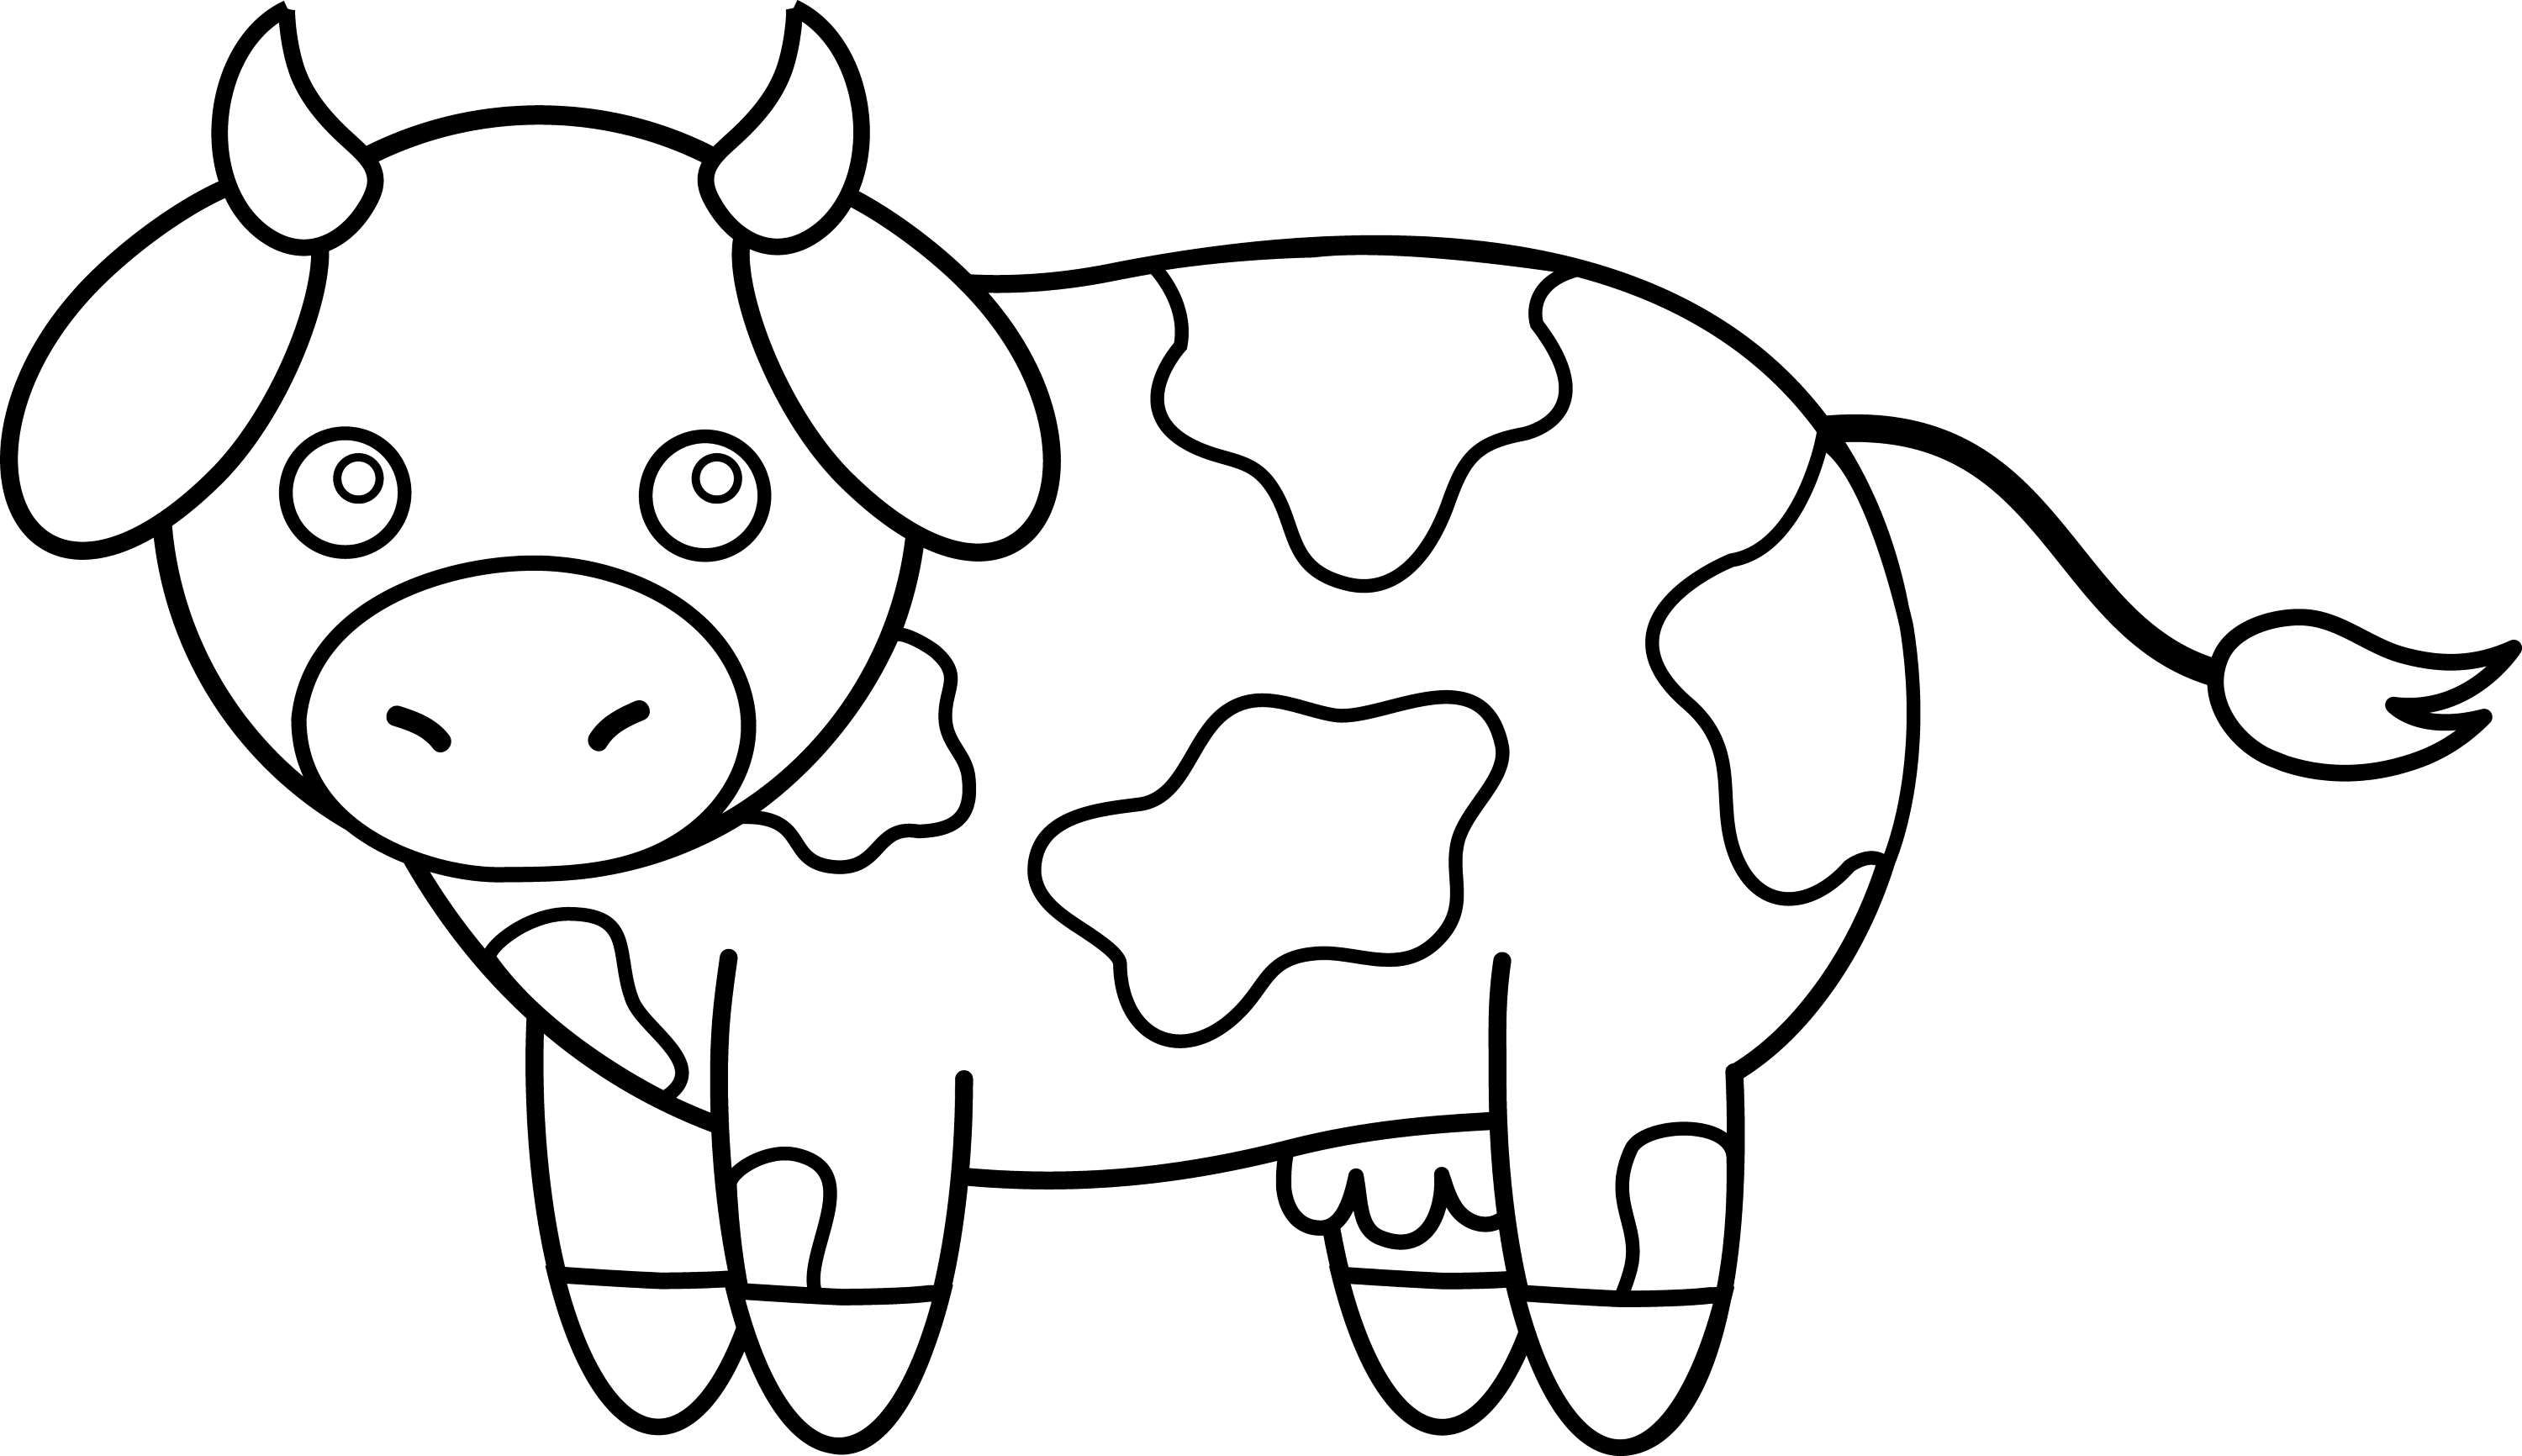 coloring picture of cow cute little cow coloring page netart cow picture coloring of